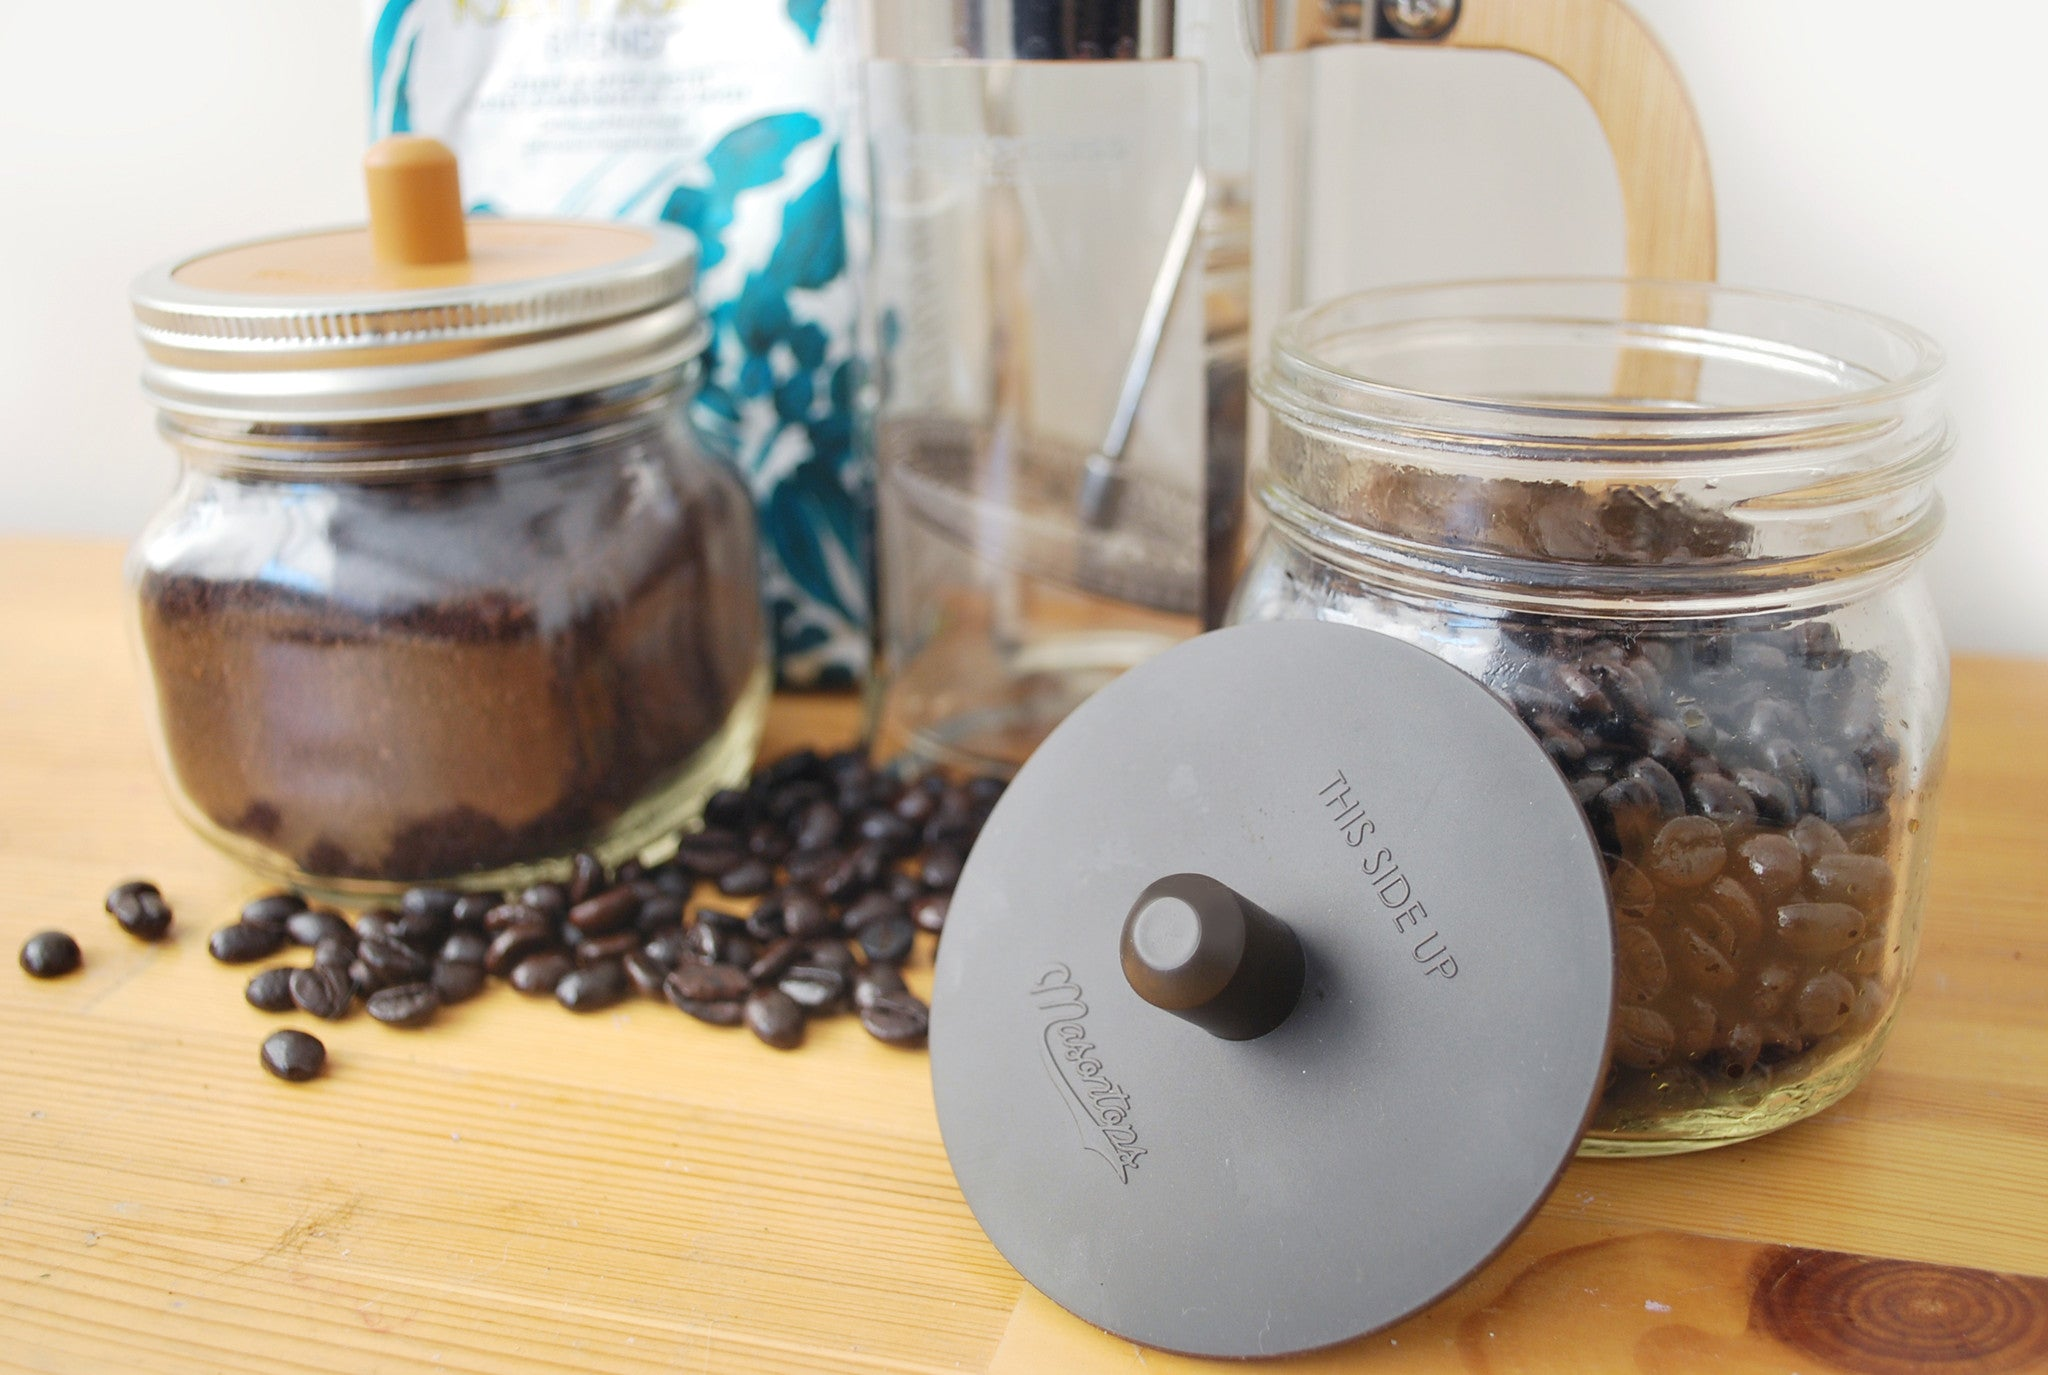 ... Coffee Caps - Silicone Coffee Bean Storage Lid for Mason Jars - WIDE MOUTH ... & Coffee Caps - Silicone Coffee Bean Storage Lid for Mason Jars - WIDE MOUTH